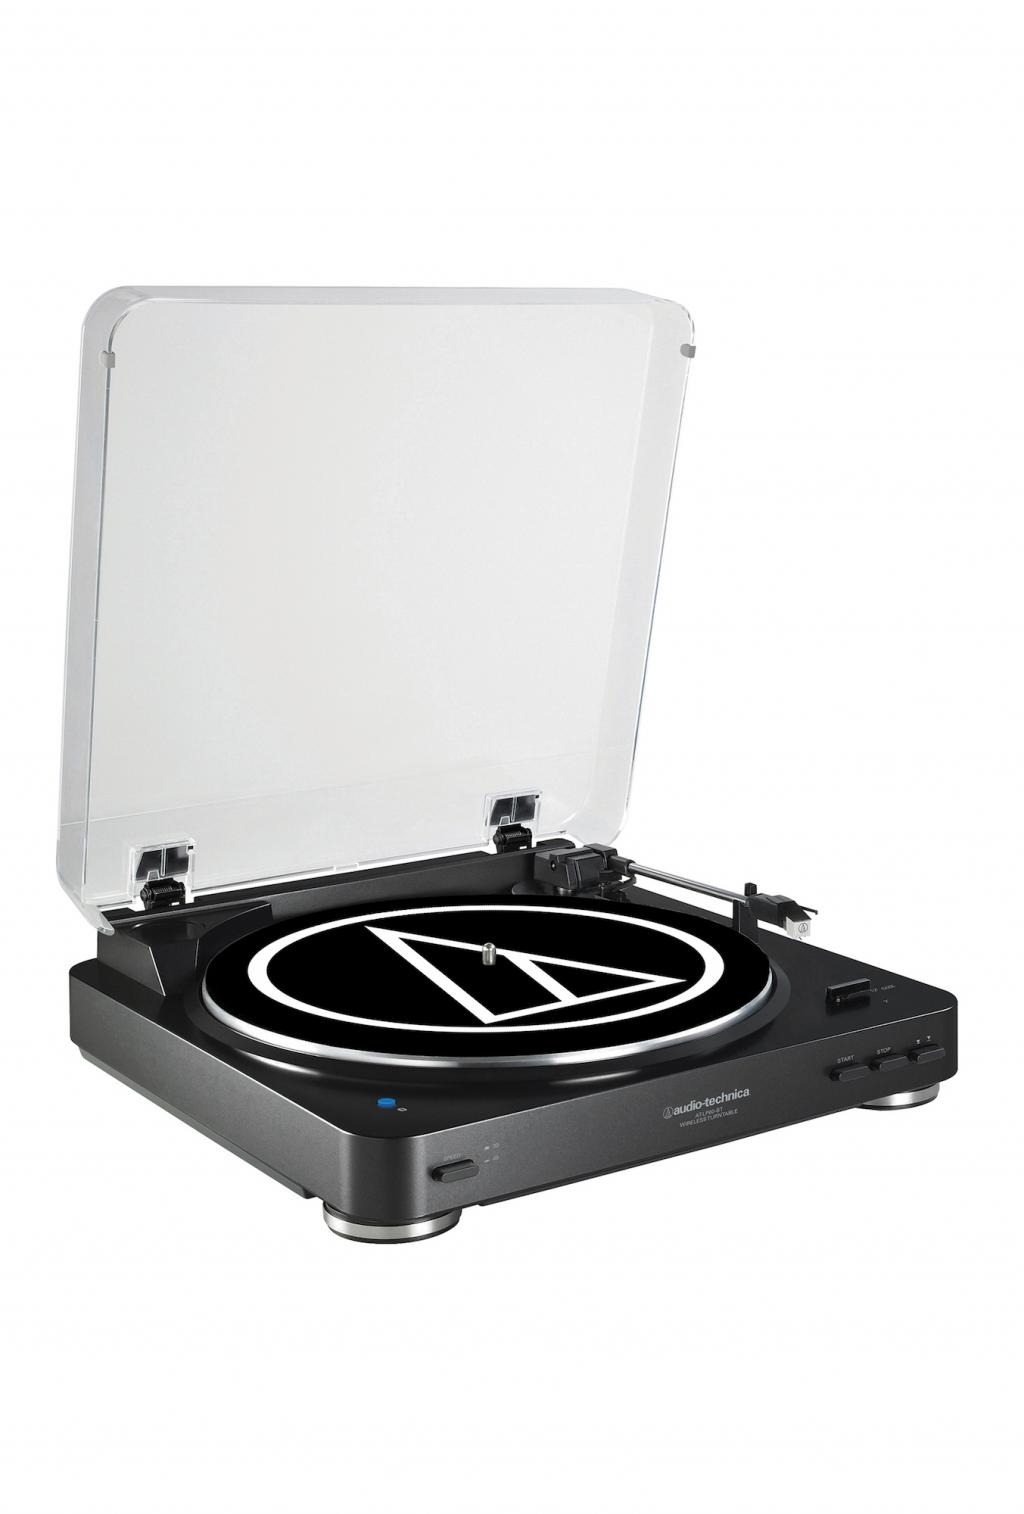 Pick-up Audio-technica At-lp60bt Negru